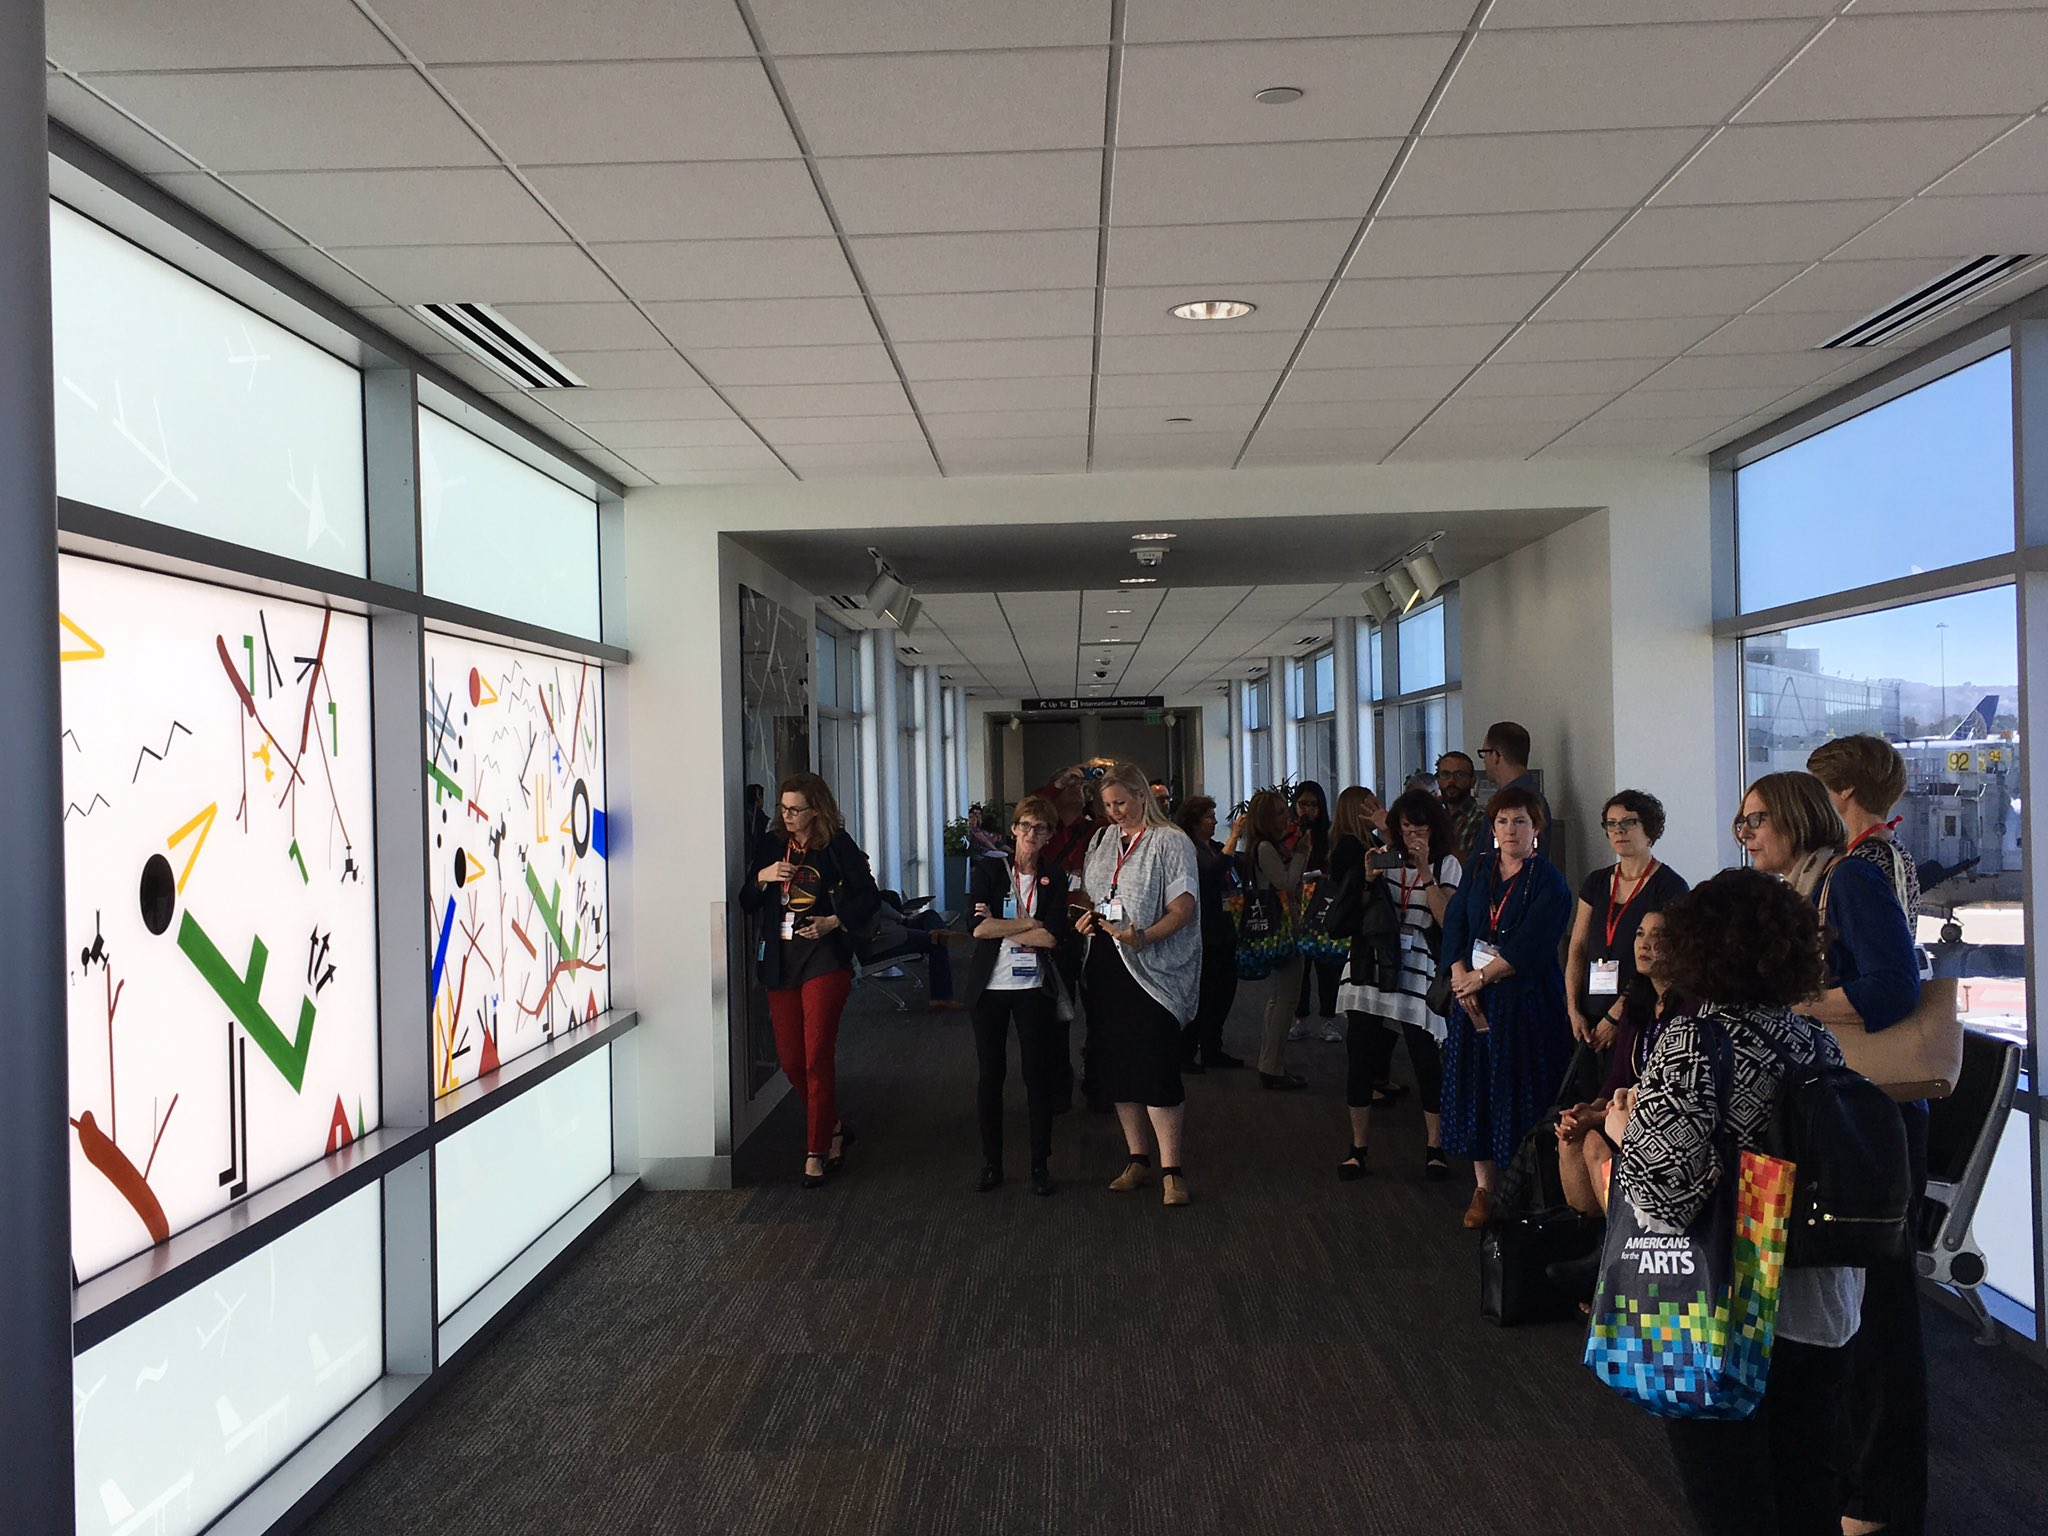 Helping @SFAC kick off  @Americans4Arts #AFTACON with a tour of public art in the terminals! https://t.co/MAAde743nX